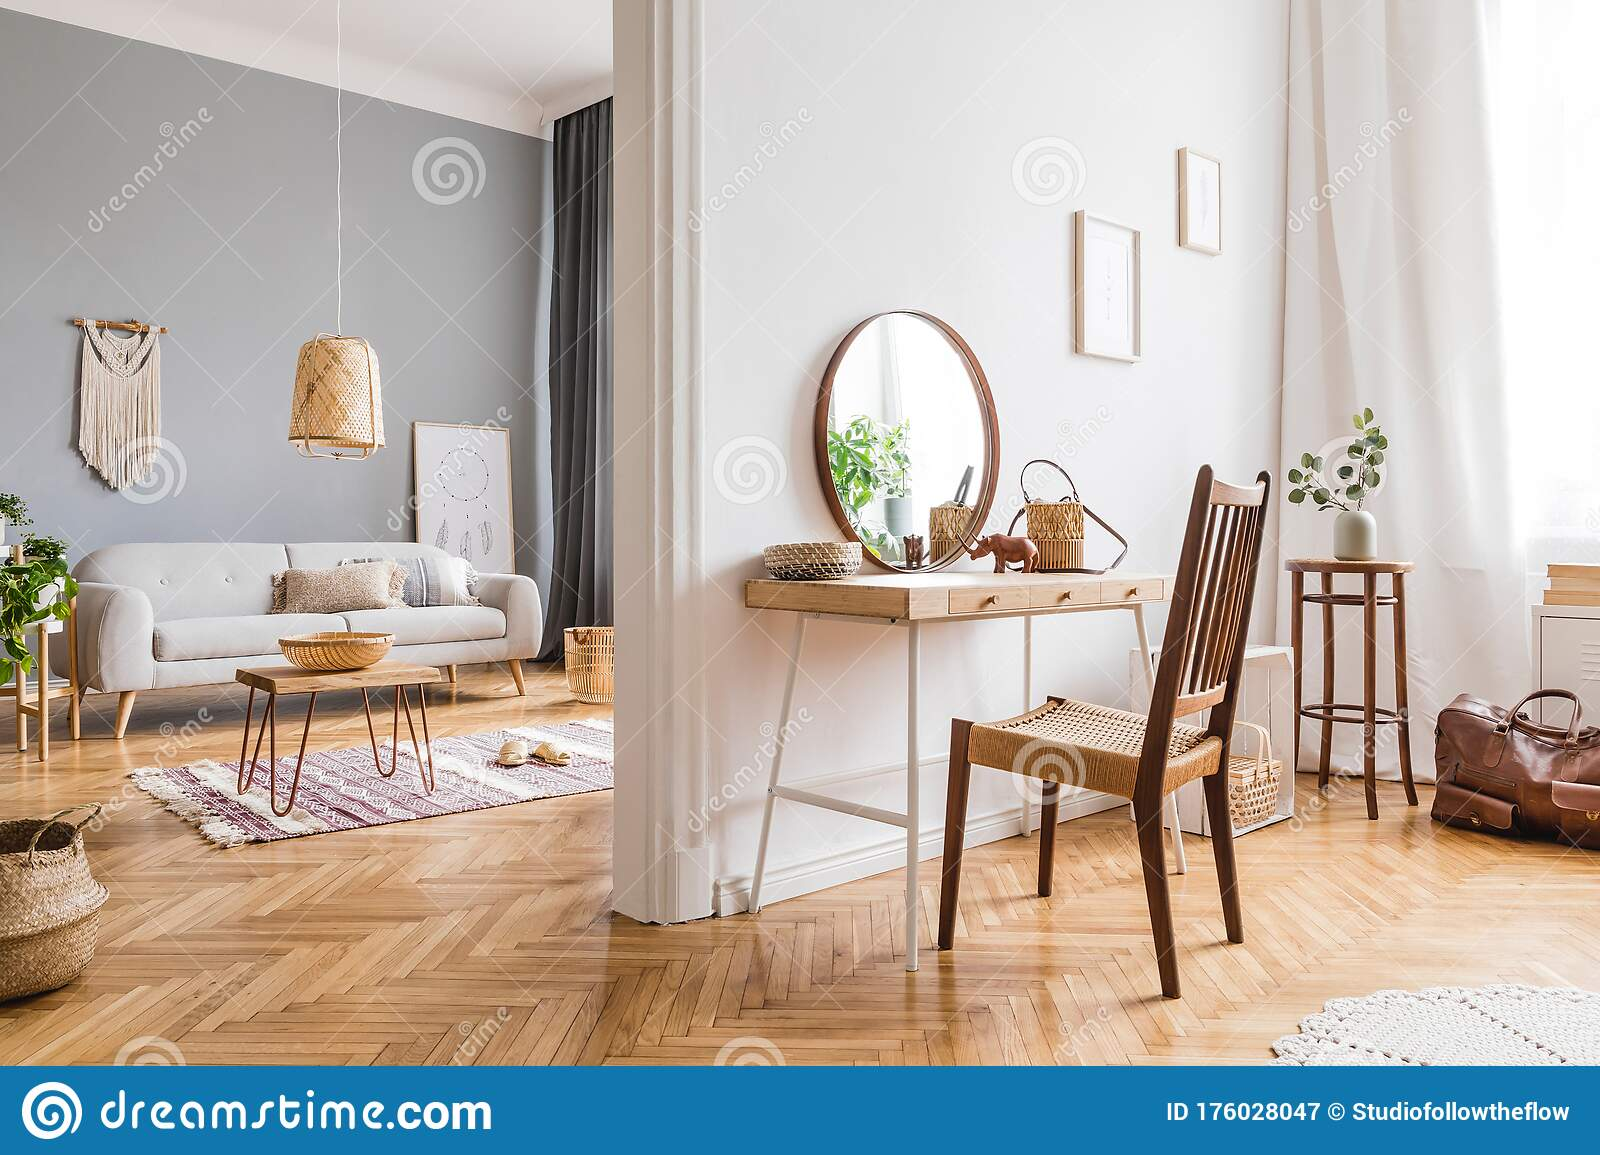 Boho Apartment With Wooden Desk Chair Grey Sofa And Beautiful Accessories Stock Image Image Of Grey Bohemian 176028047